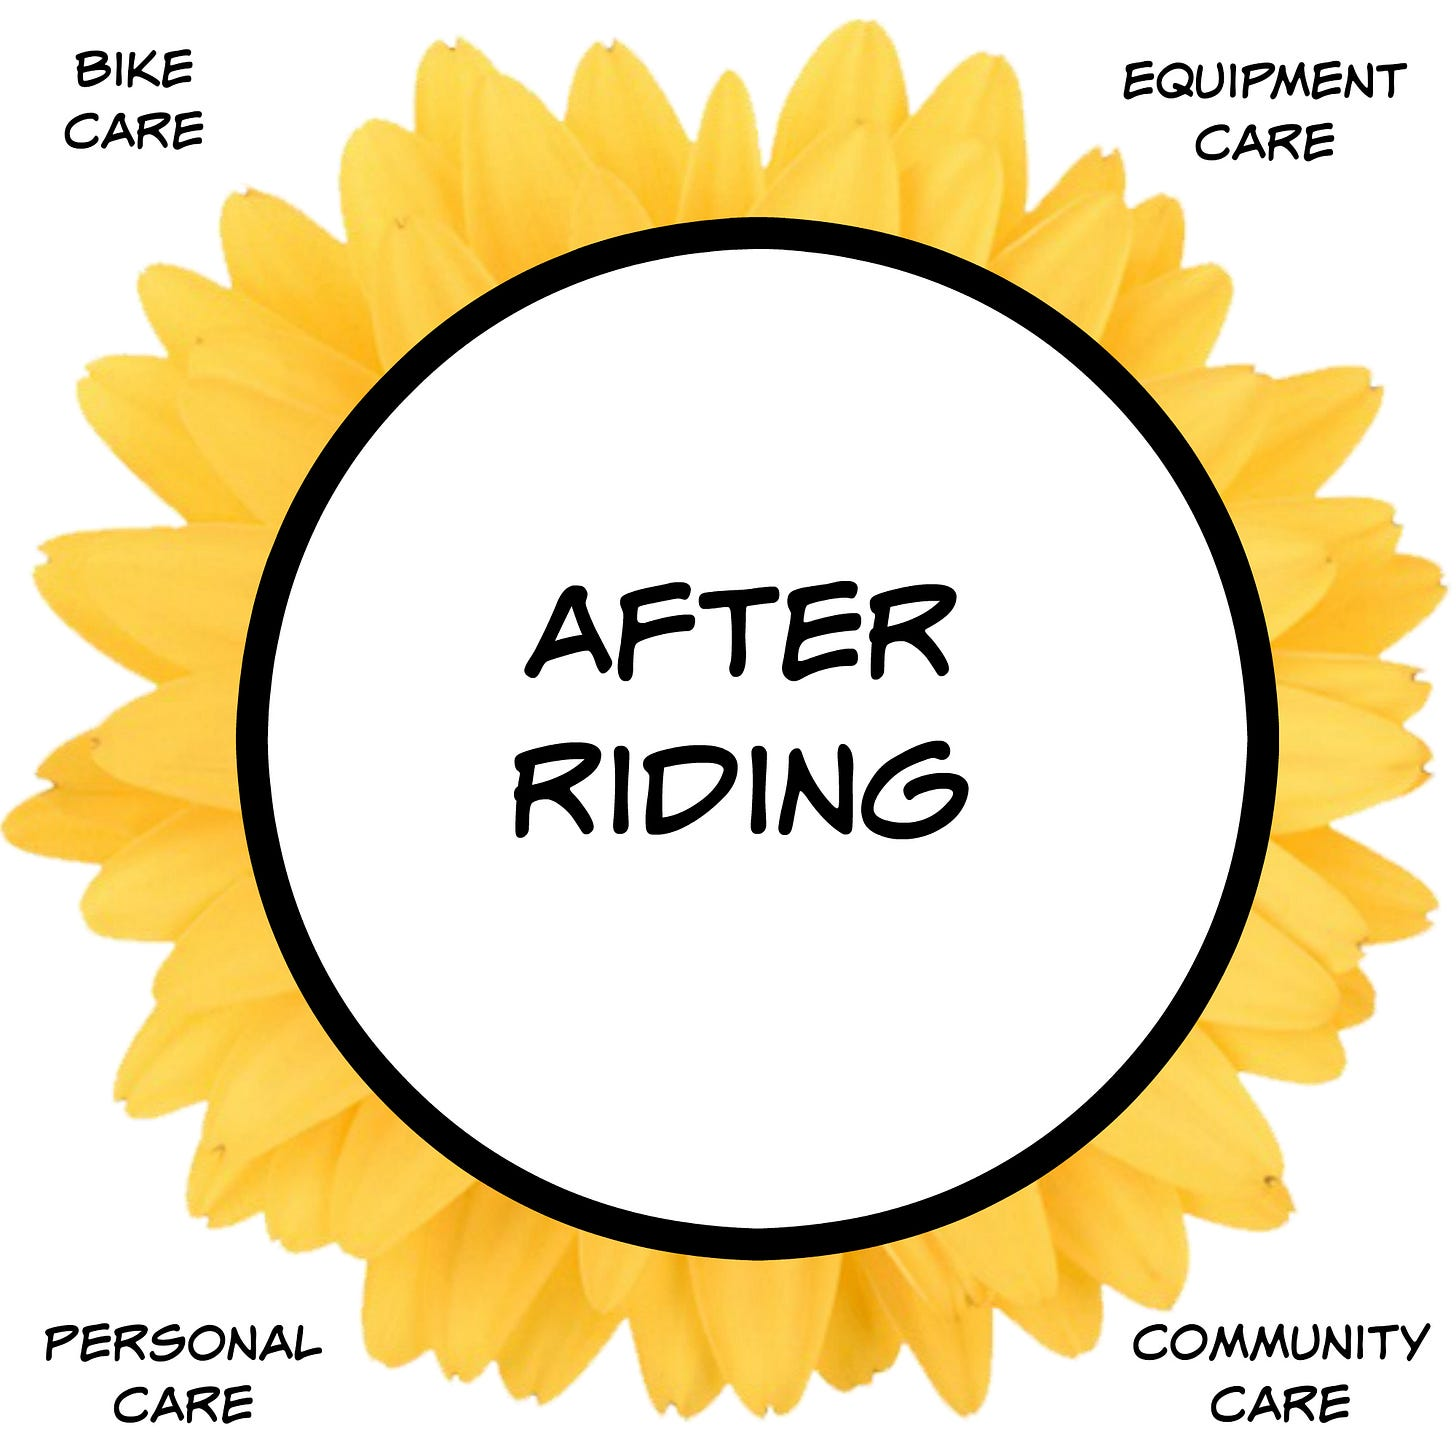 After Riding considerations